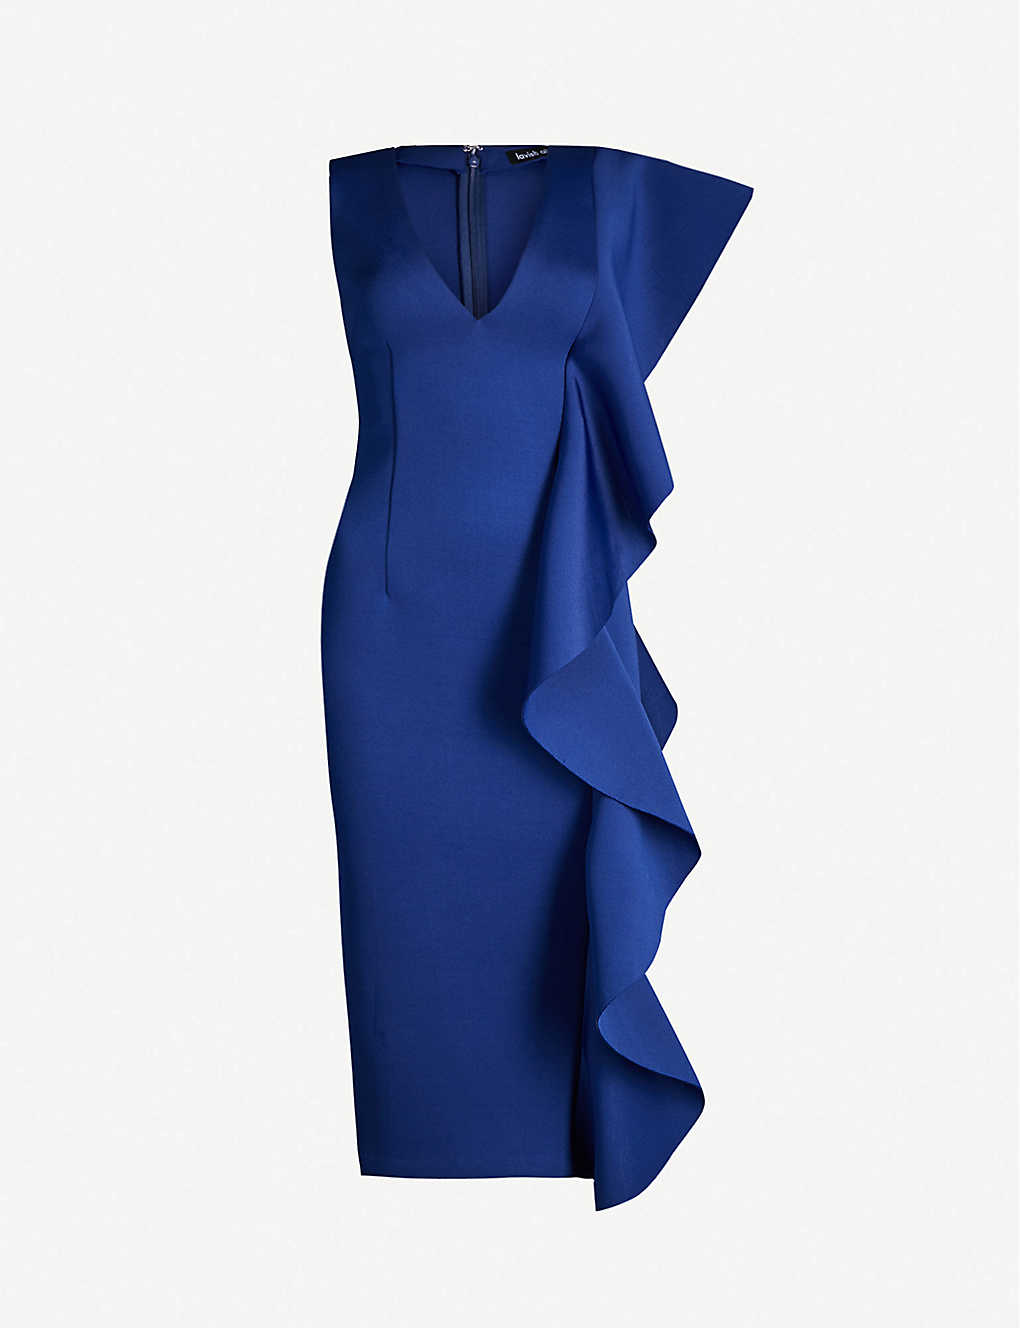 Frilled Neoprene Dress